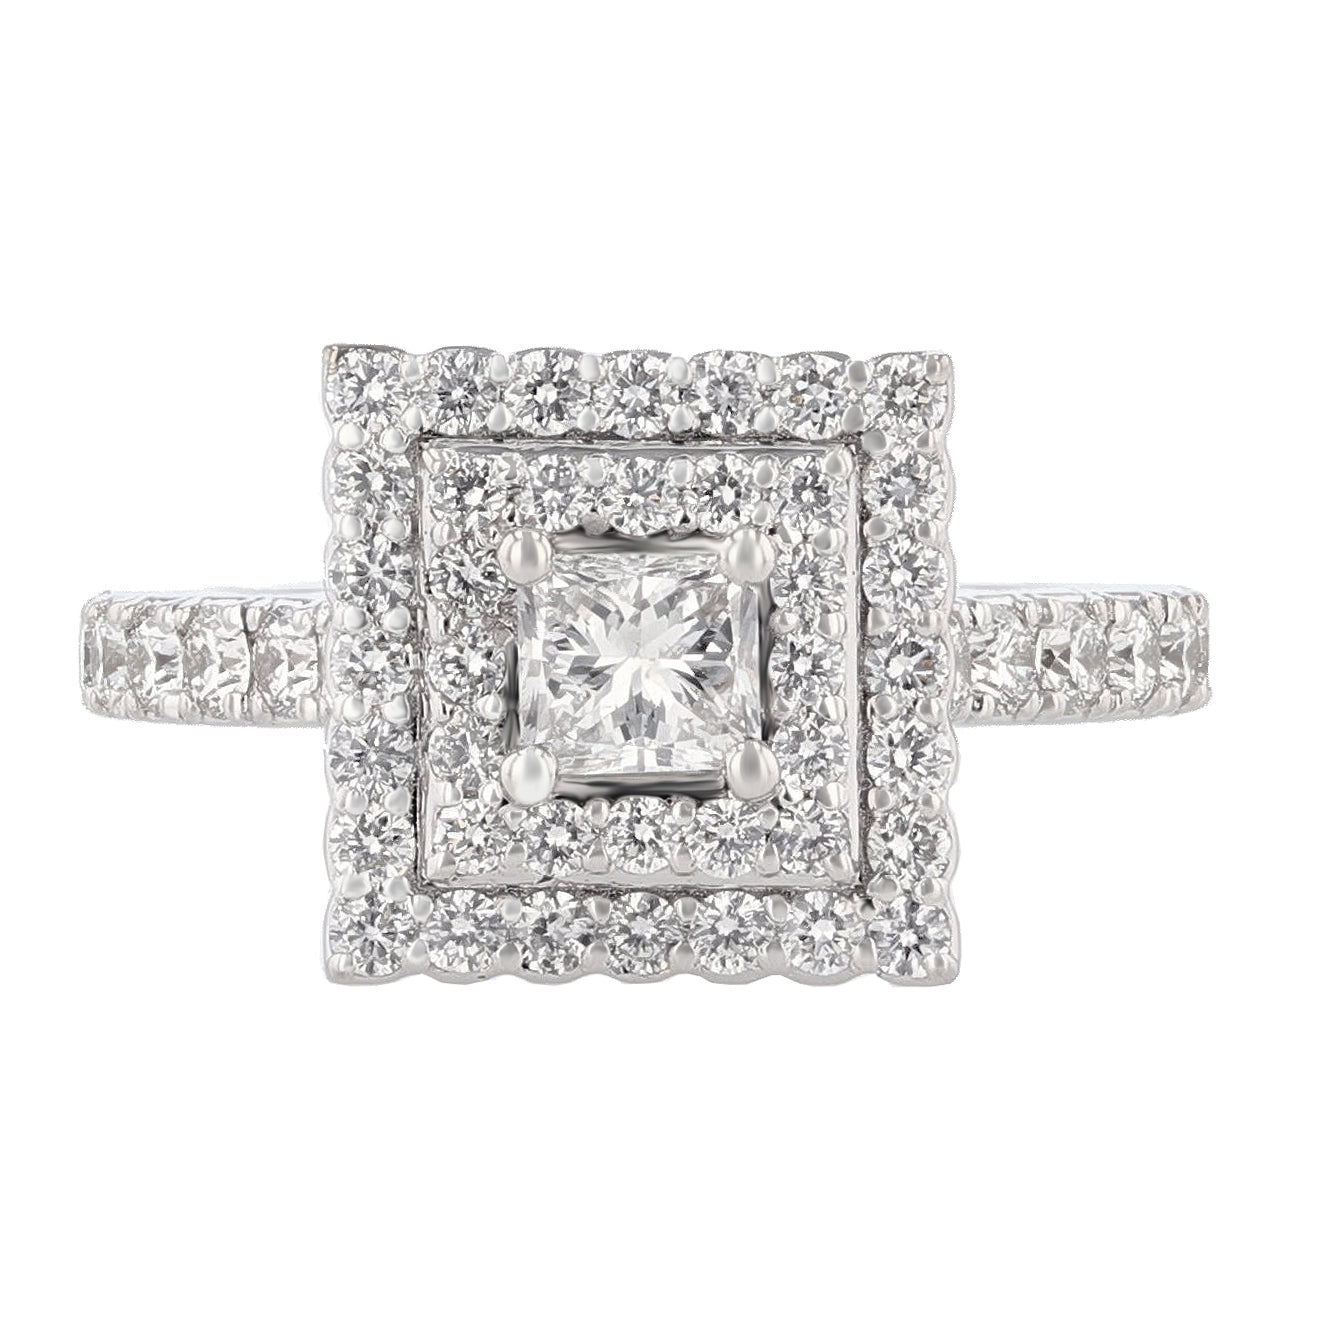 14K White Gold Princess Cut Diamond Double Halo Engagement Ring - Nazarelle